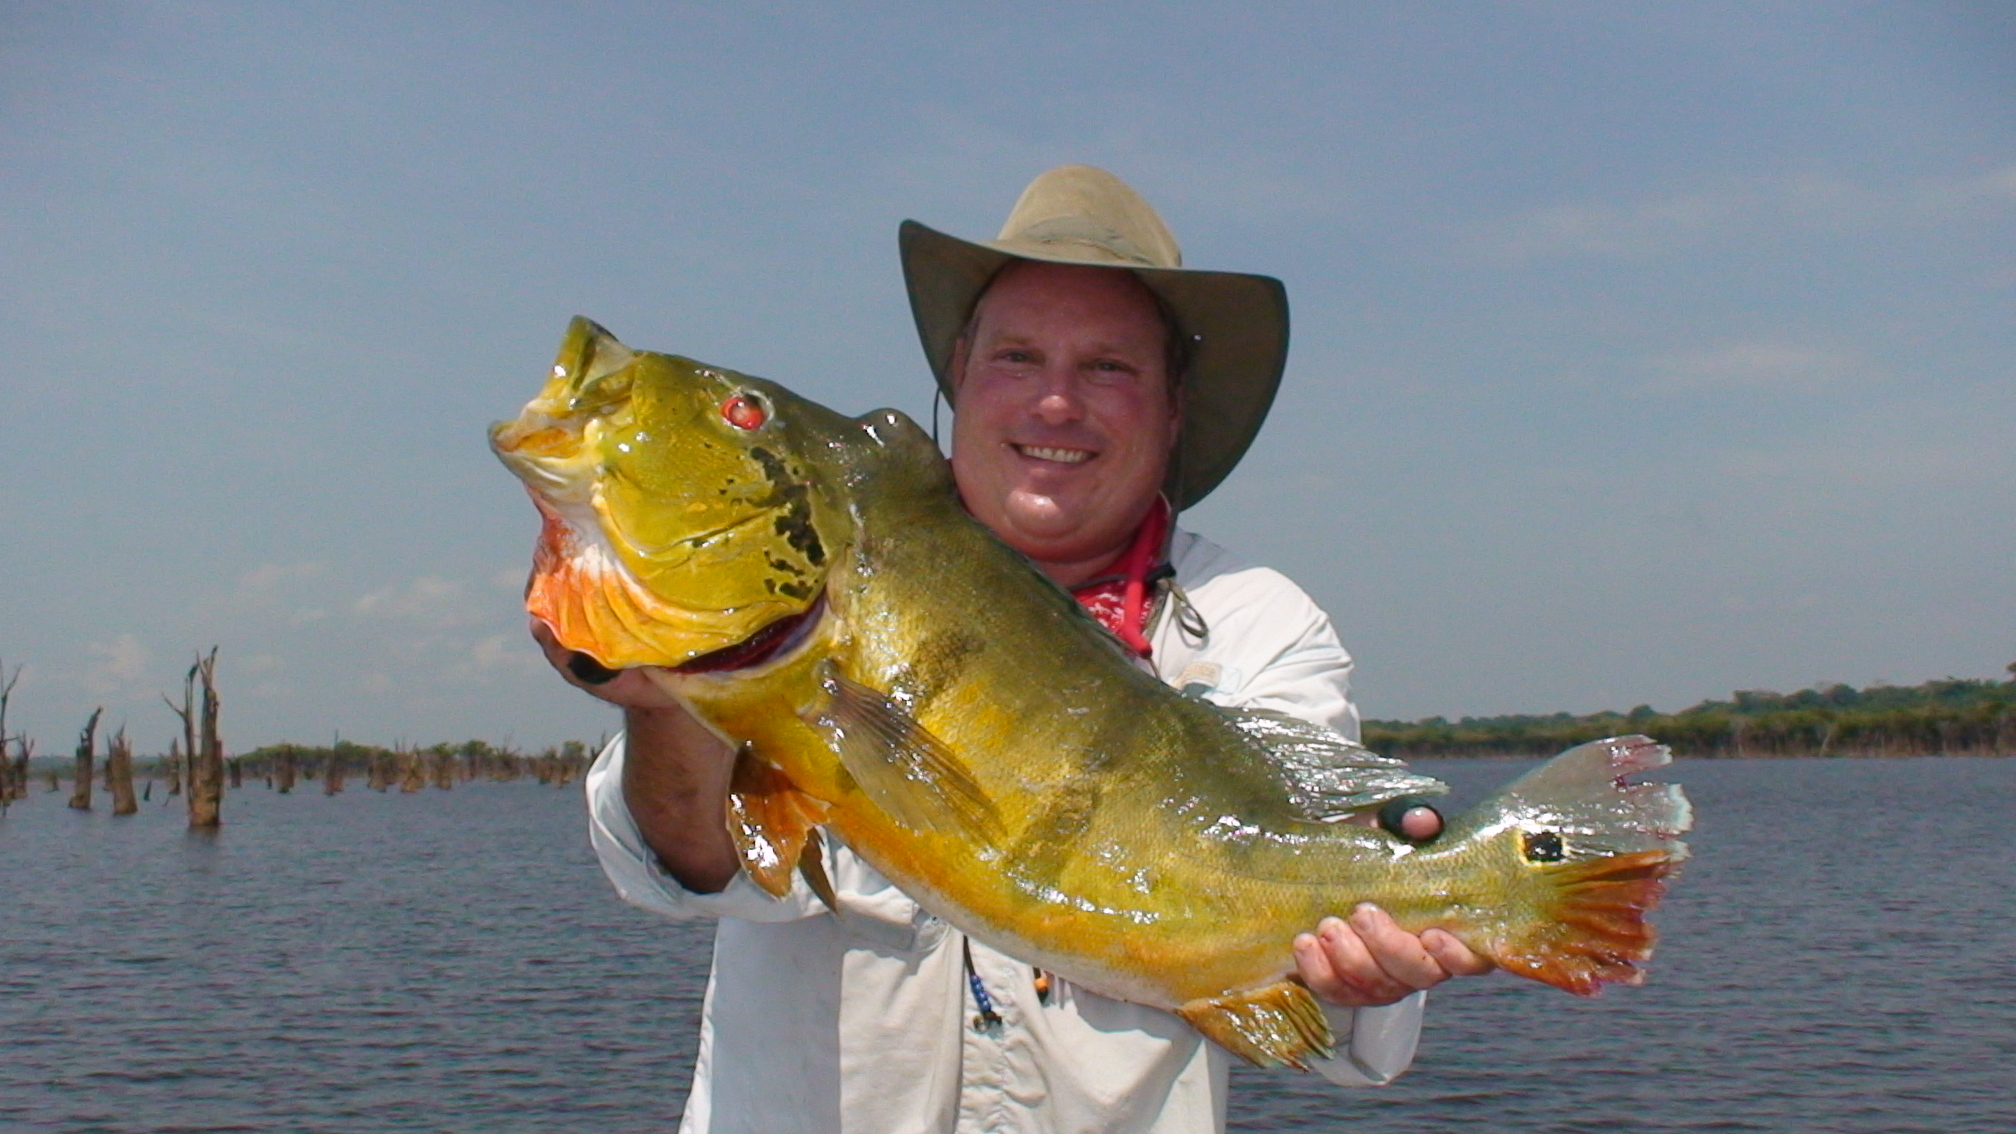 South florida bass fishing reports blog amazon peacock for Bass fishing trips